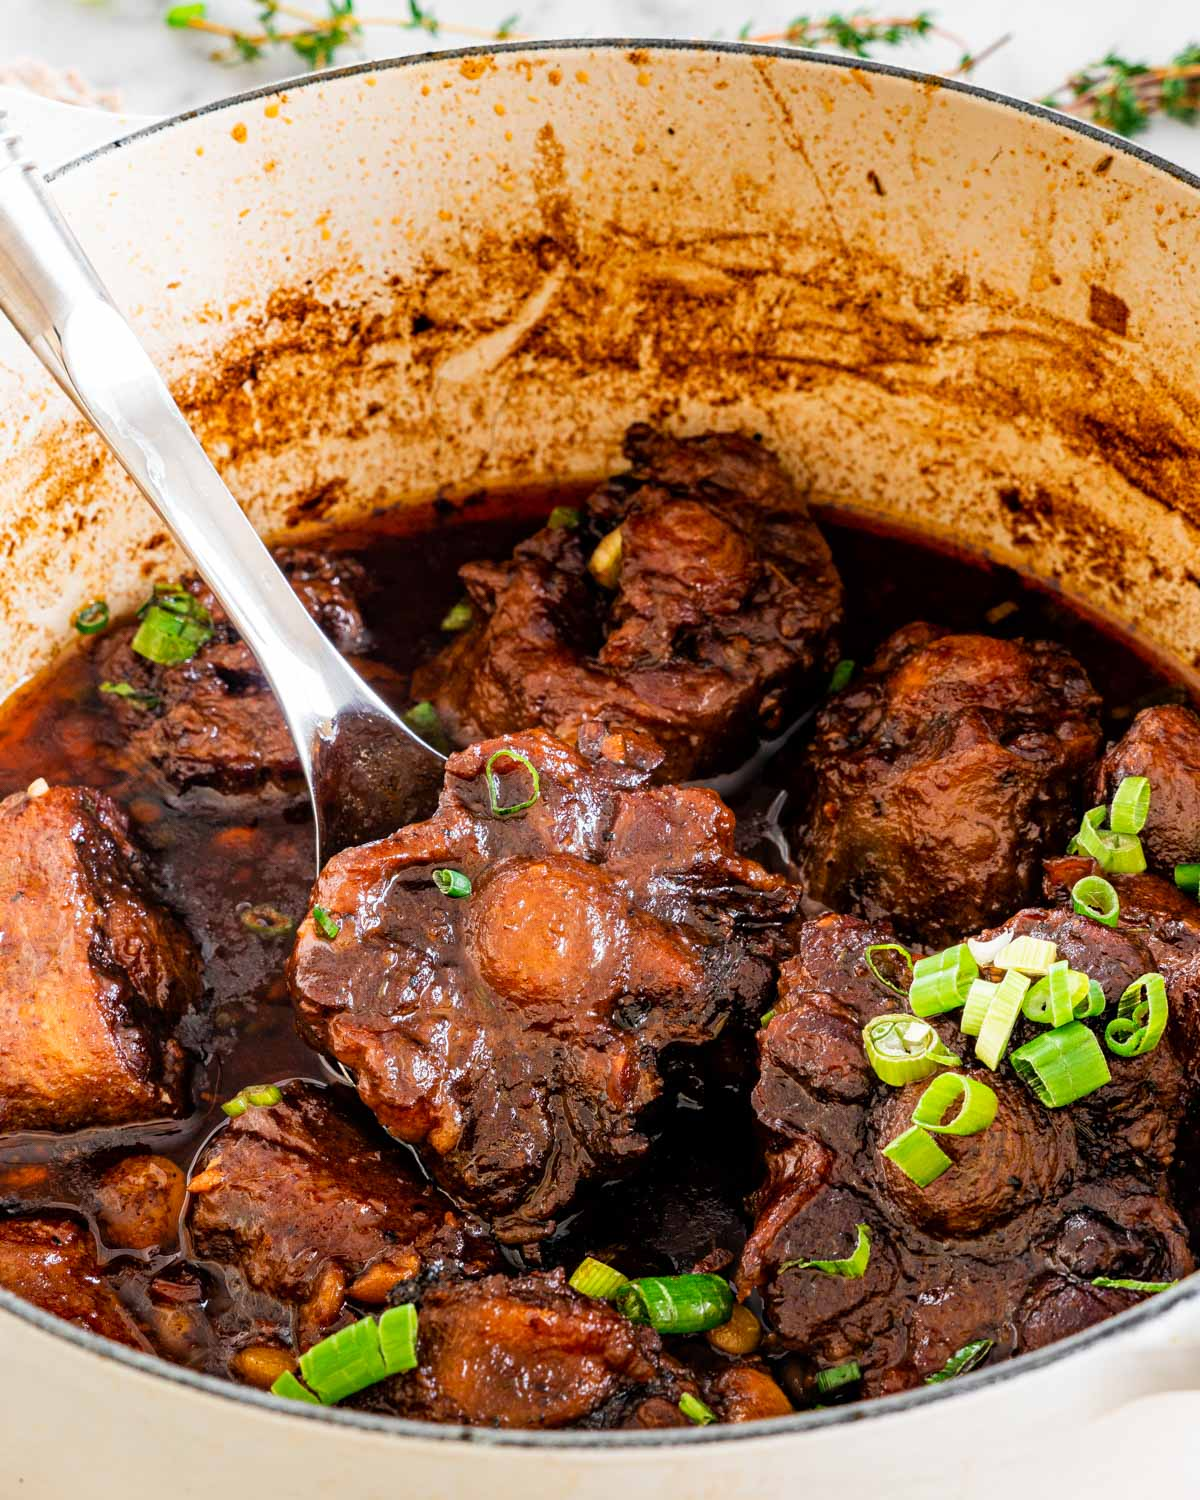 a pot of full of oxtail stew with a spoon inside holding an oxtail and garnished with green onions